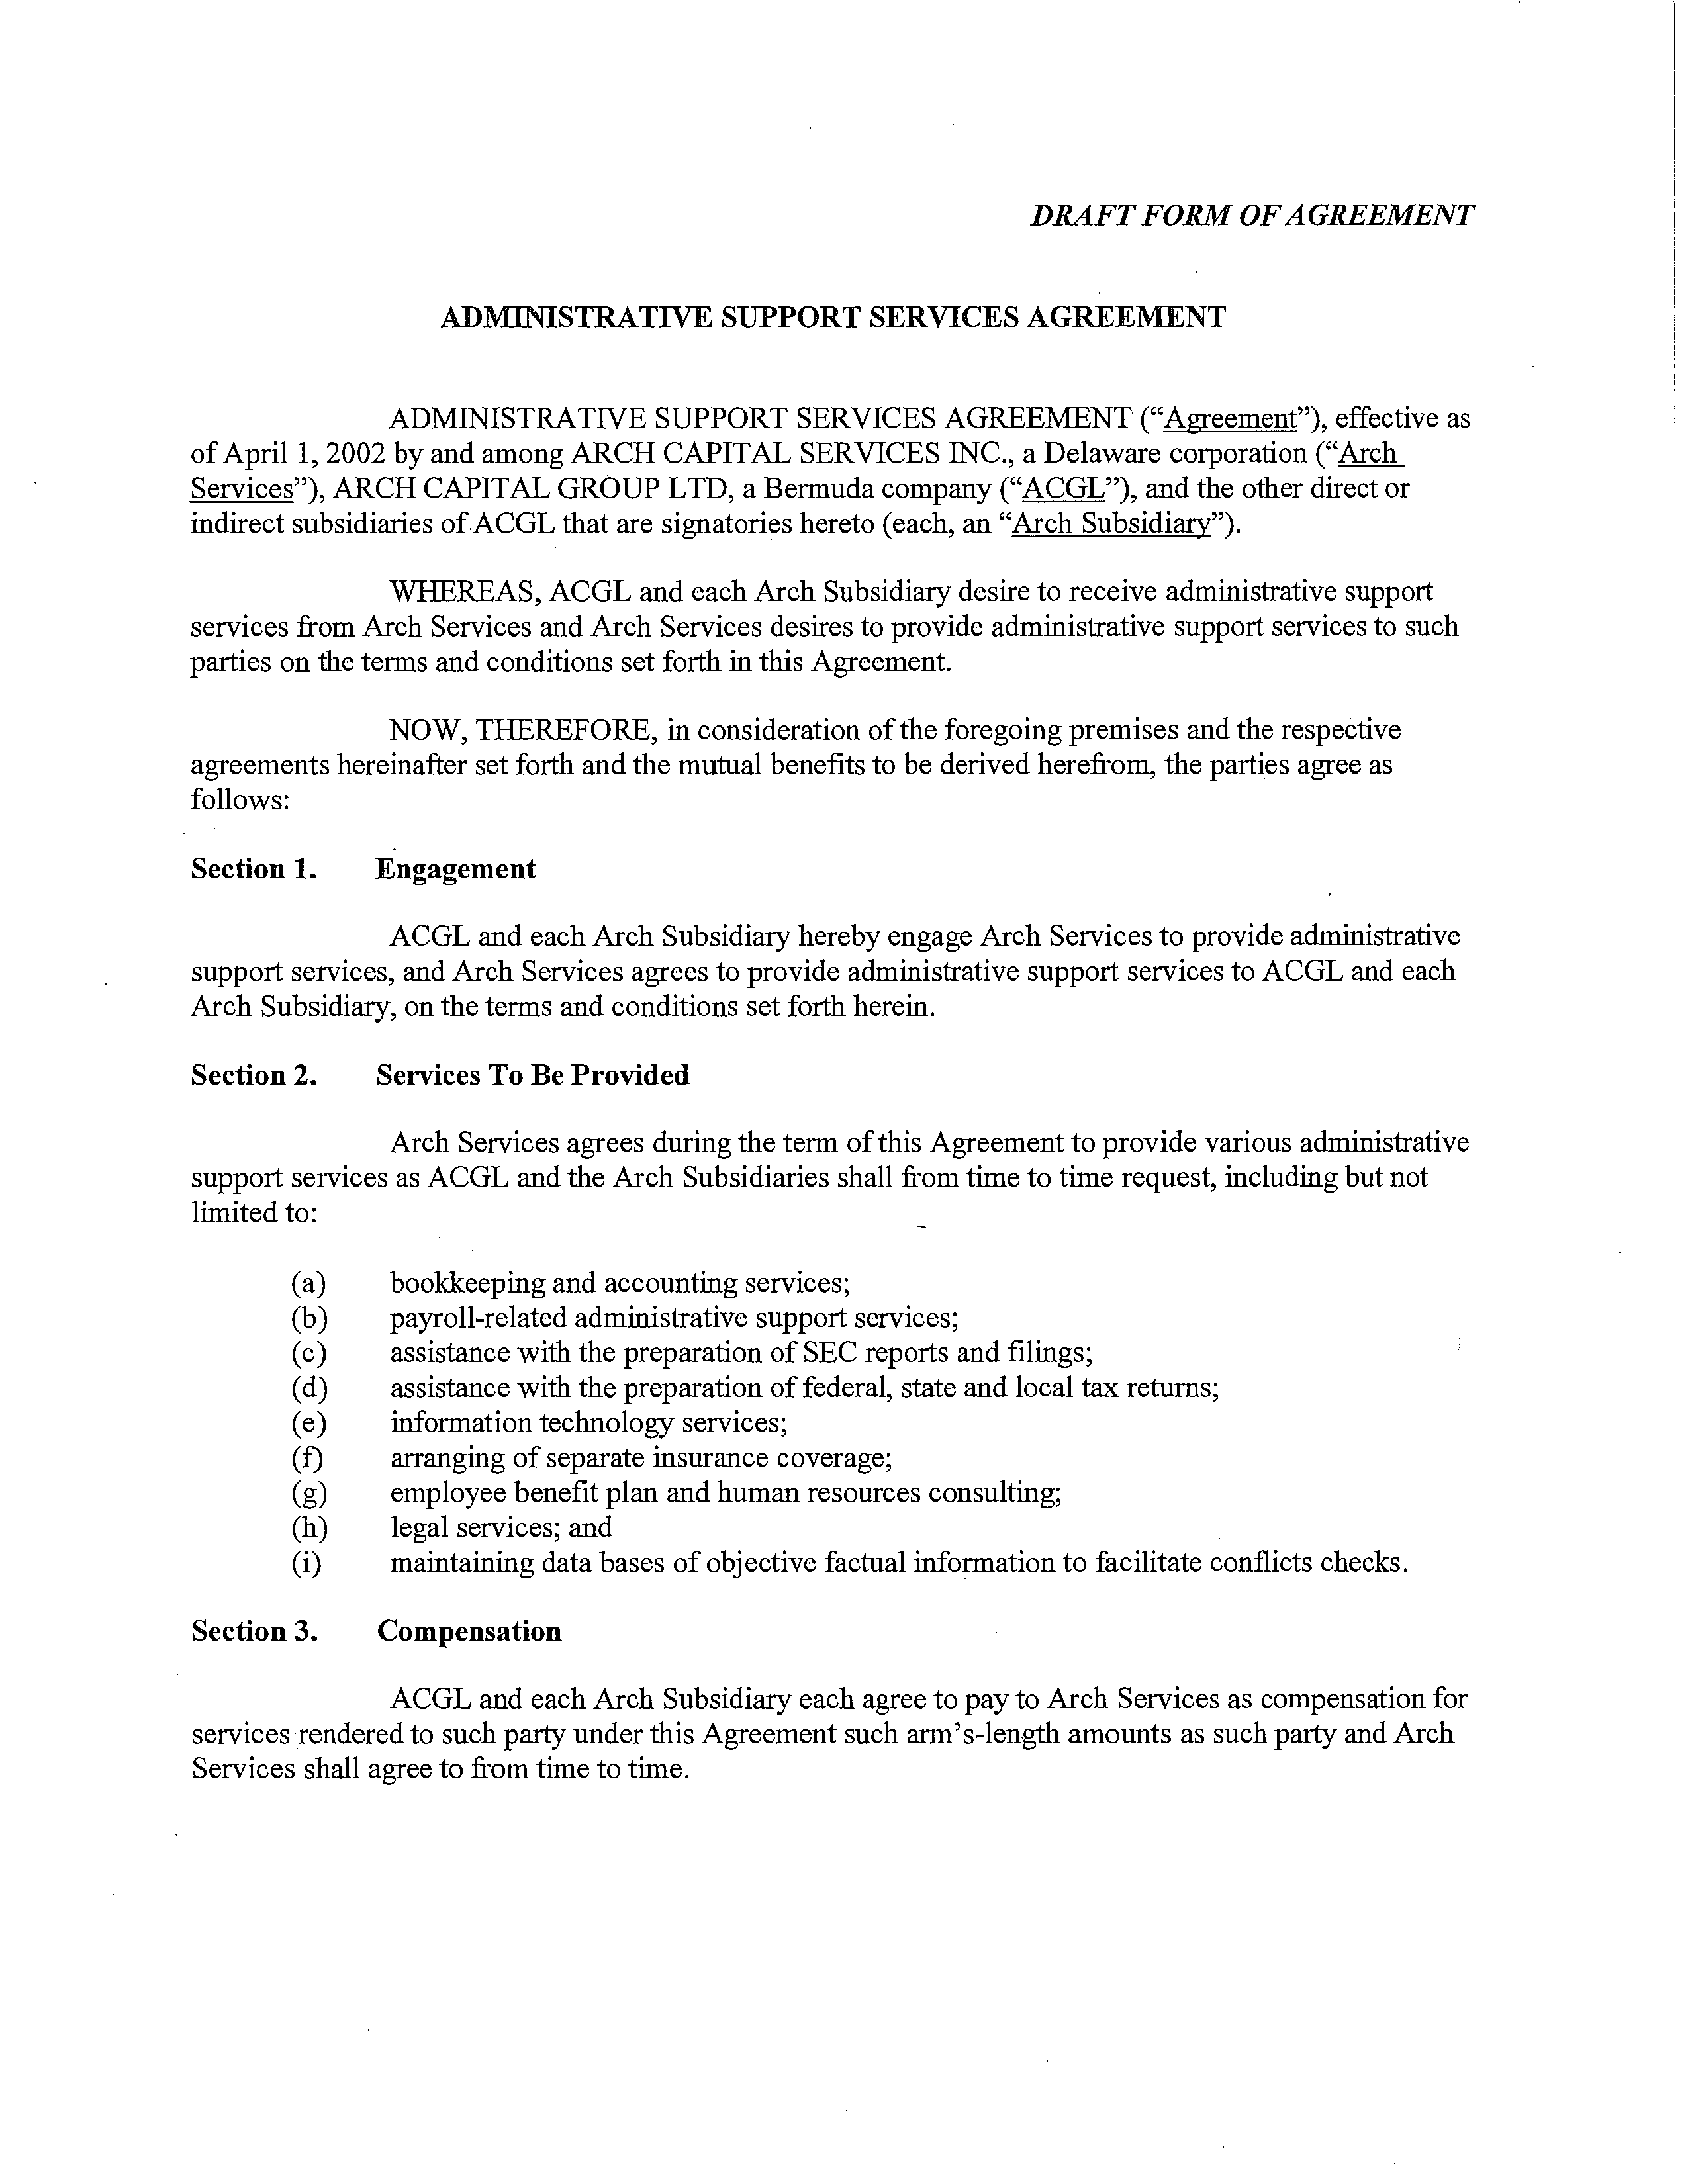 Free Administrative Support Services Agreement Templates At